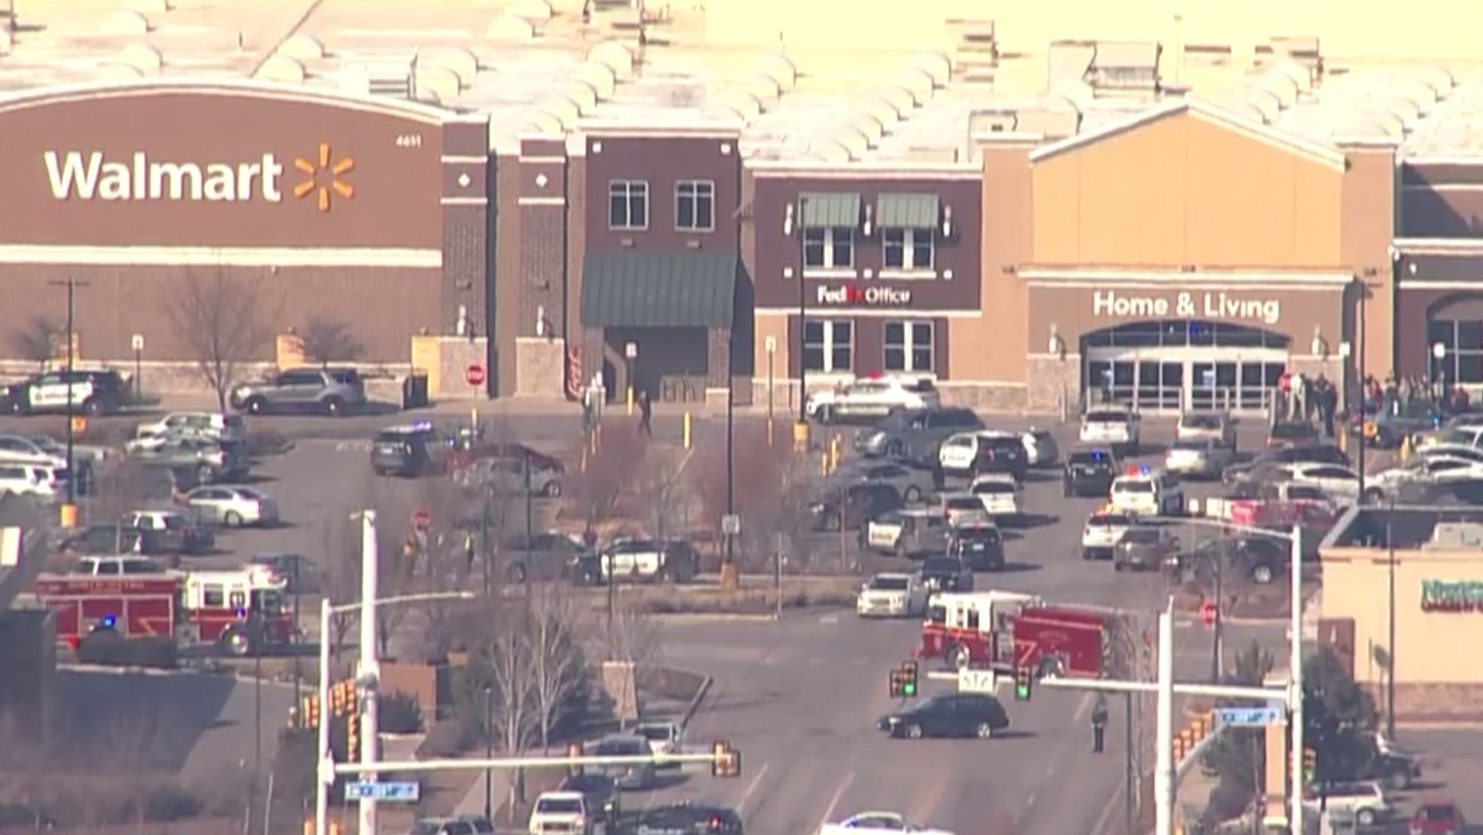 Police activity at Walmart in Broomfield, Colo. on Feb. 18, 2020.